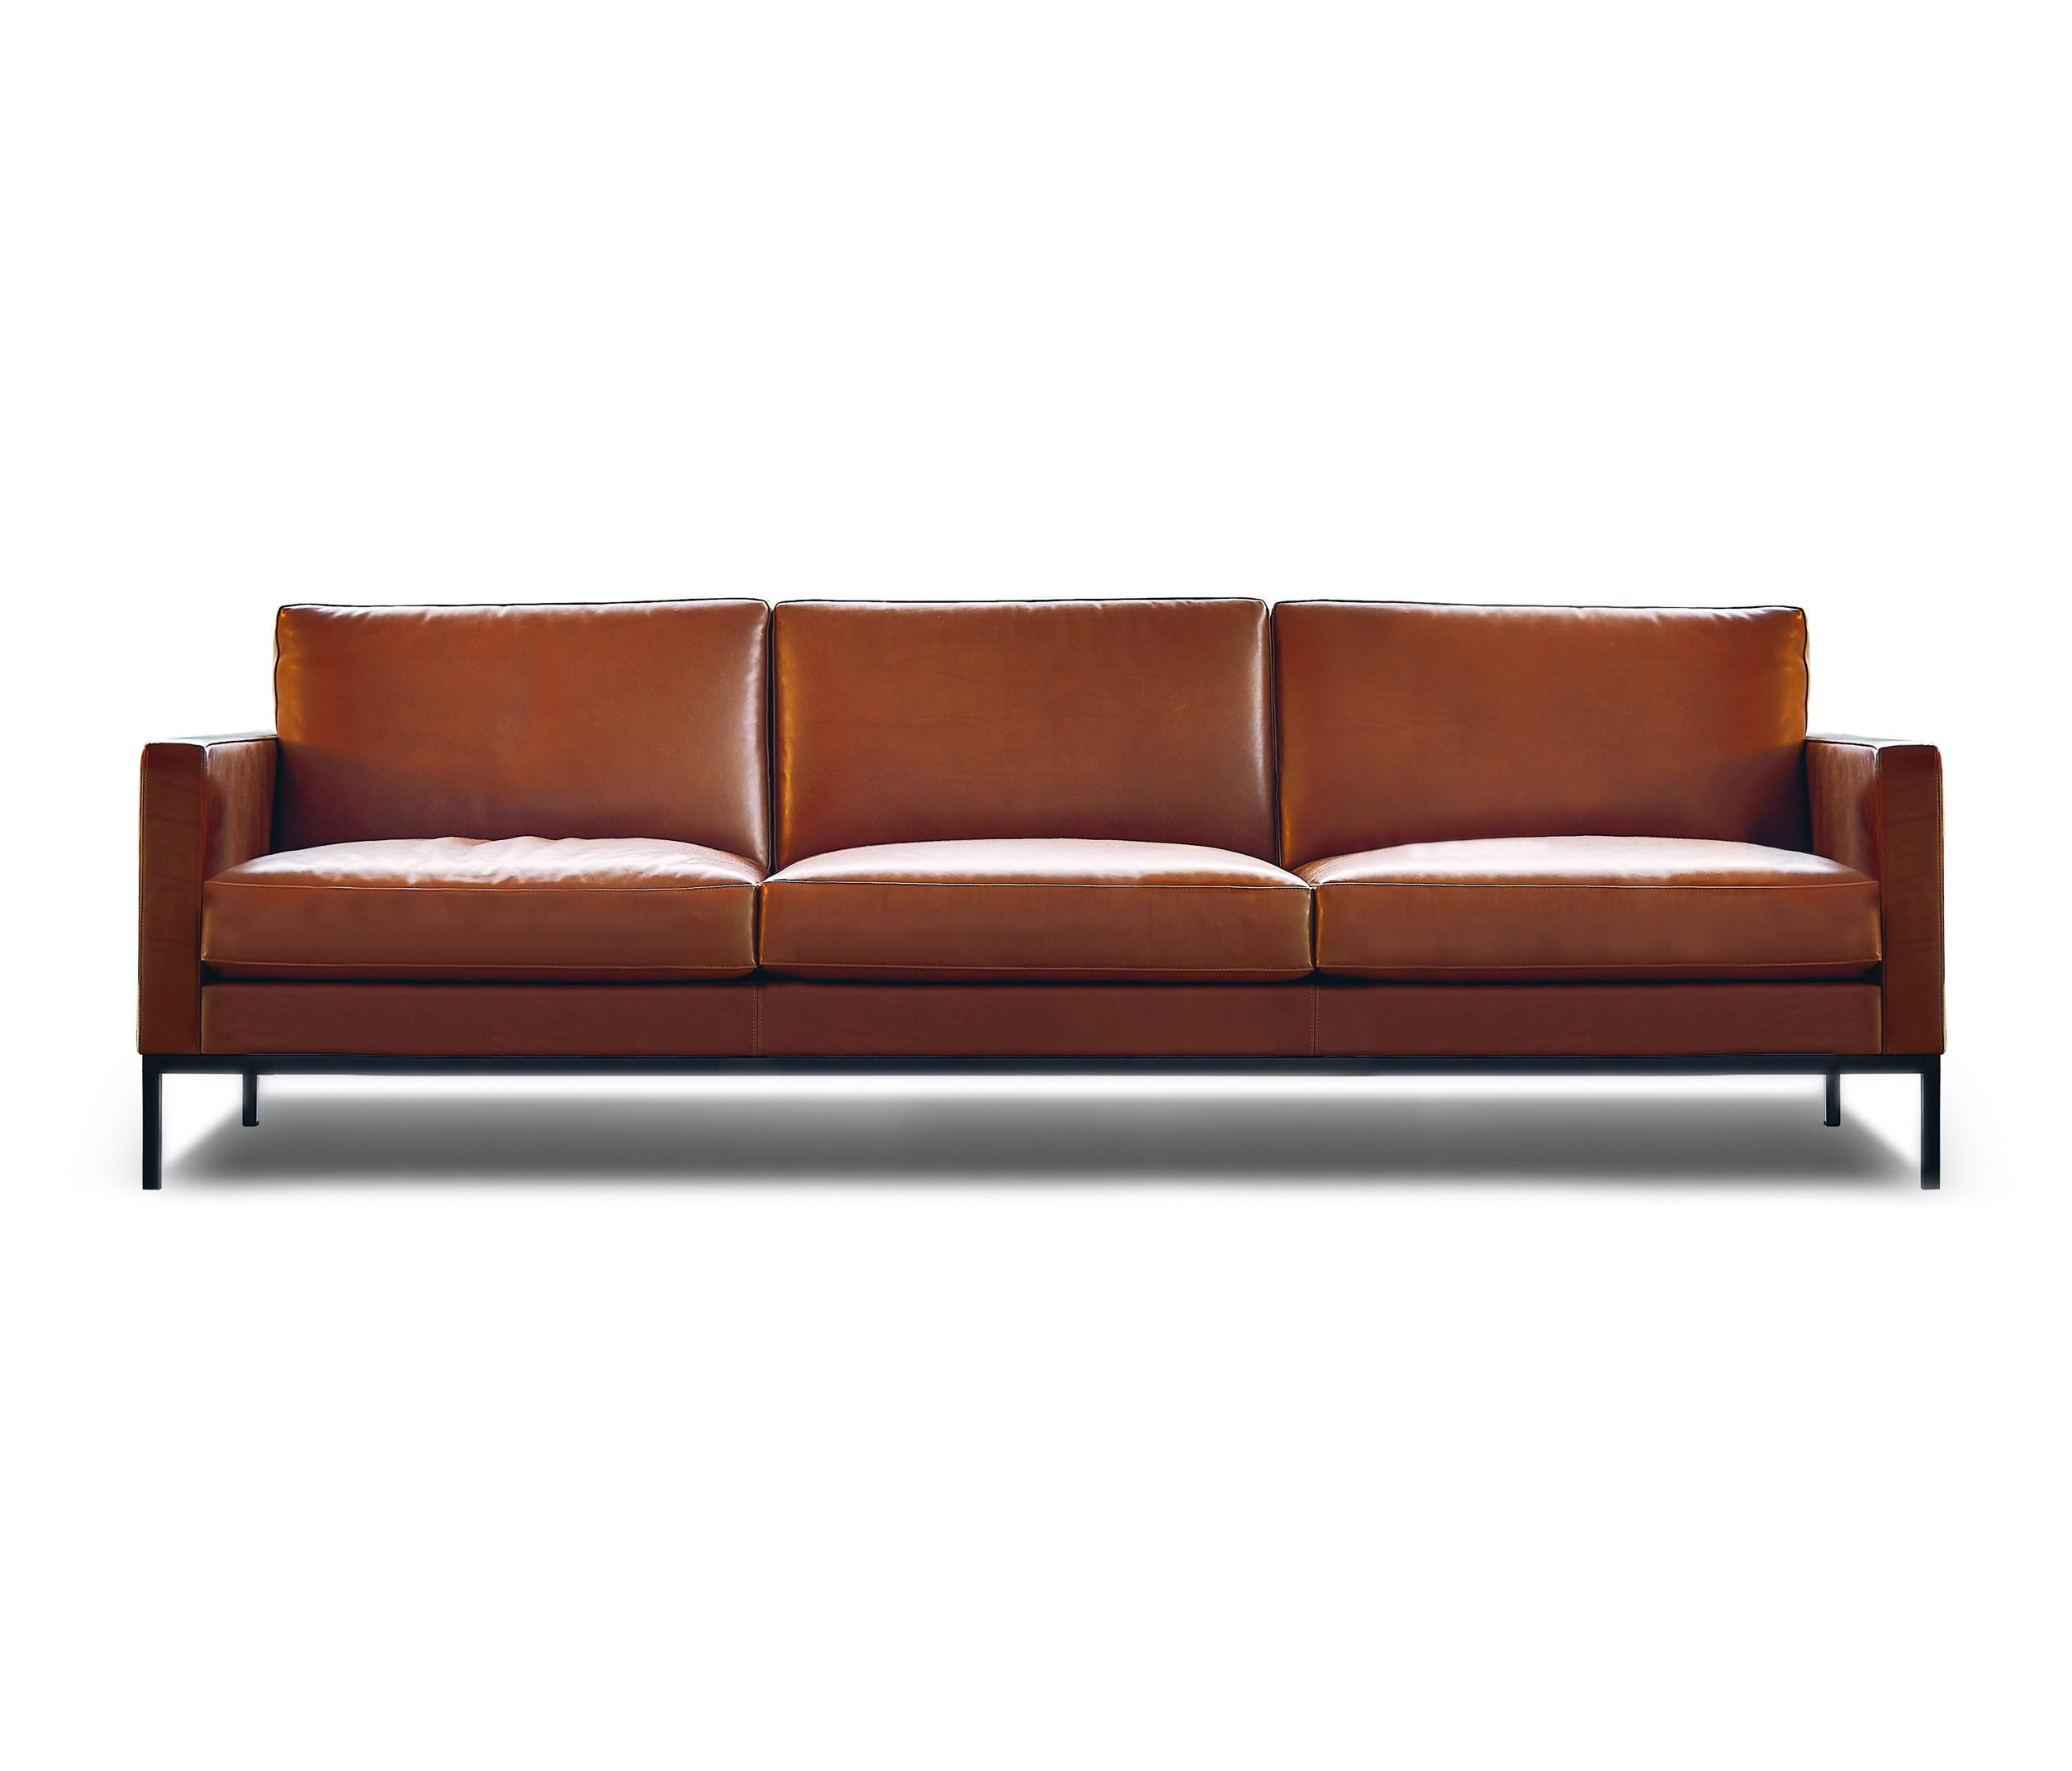 Superieur Florence Knoll Lounge 3 Seat Sofa By Knoll International | Sofas